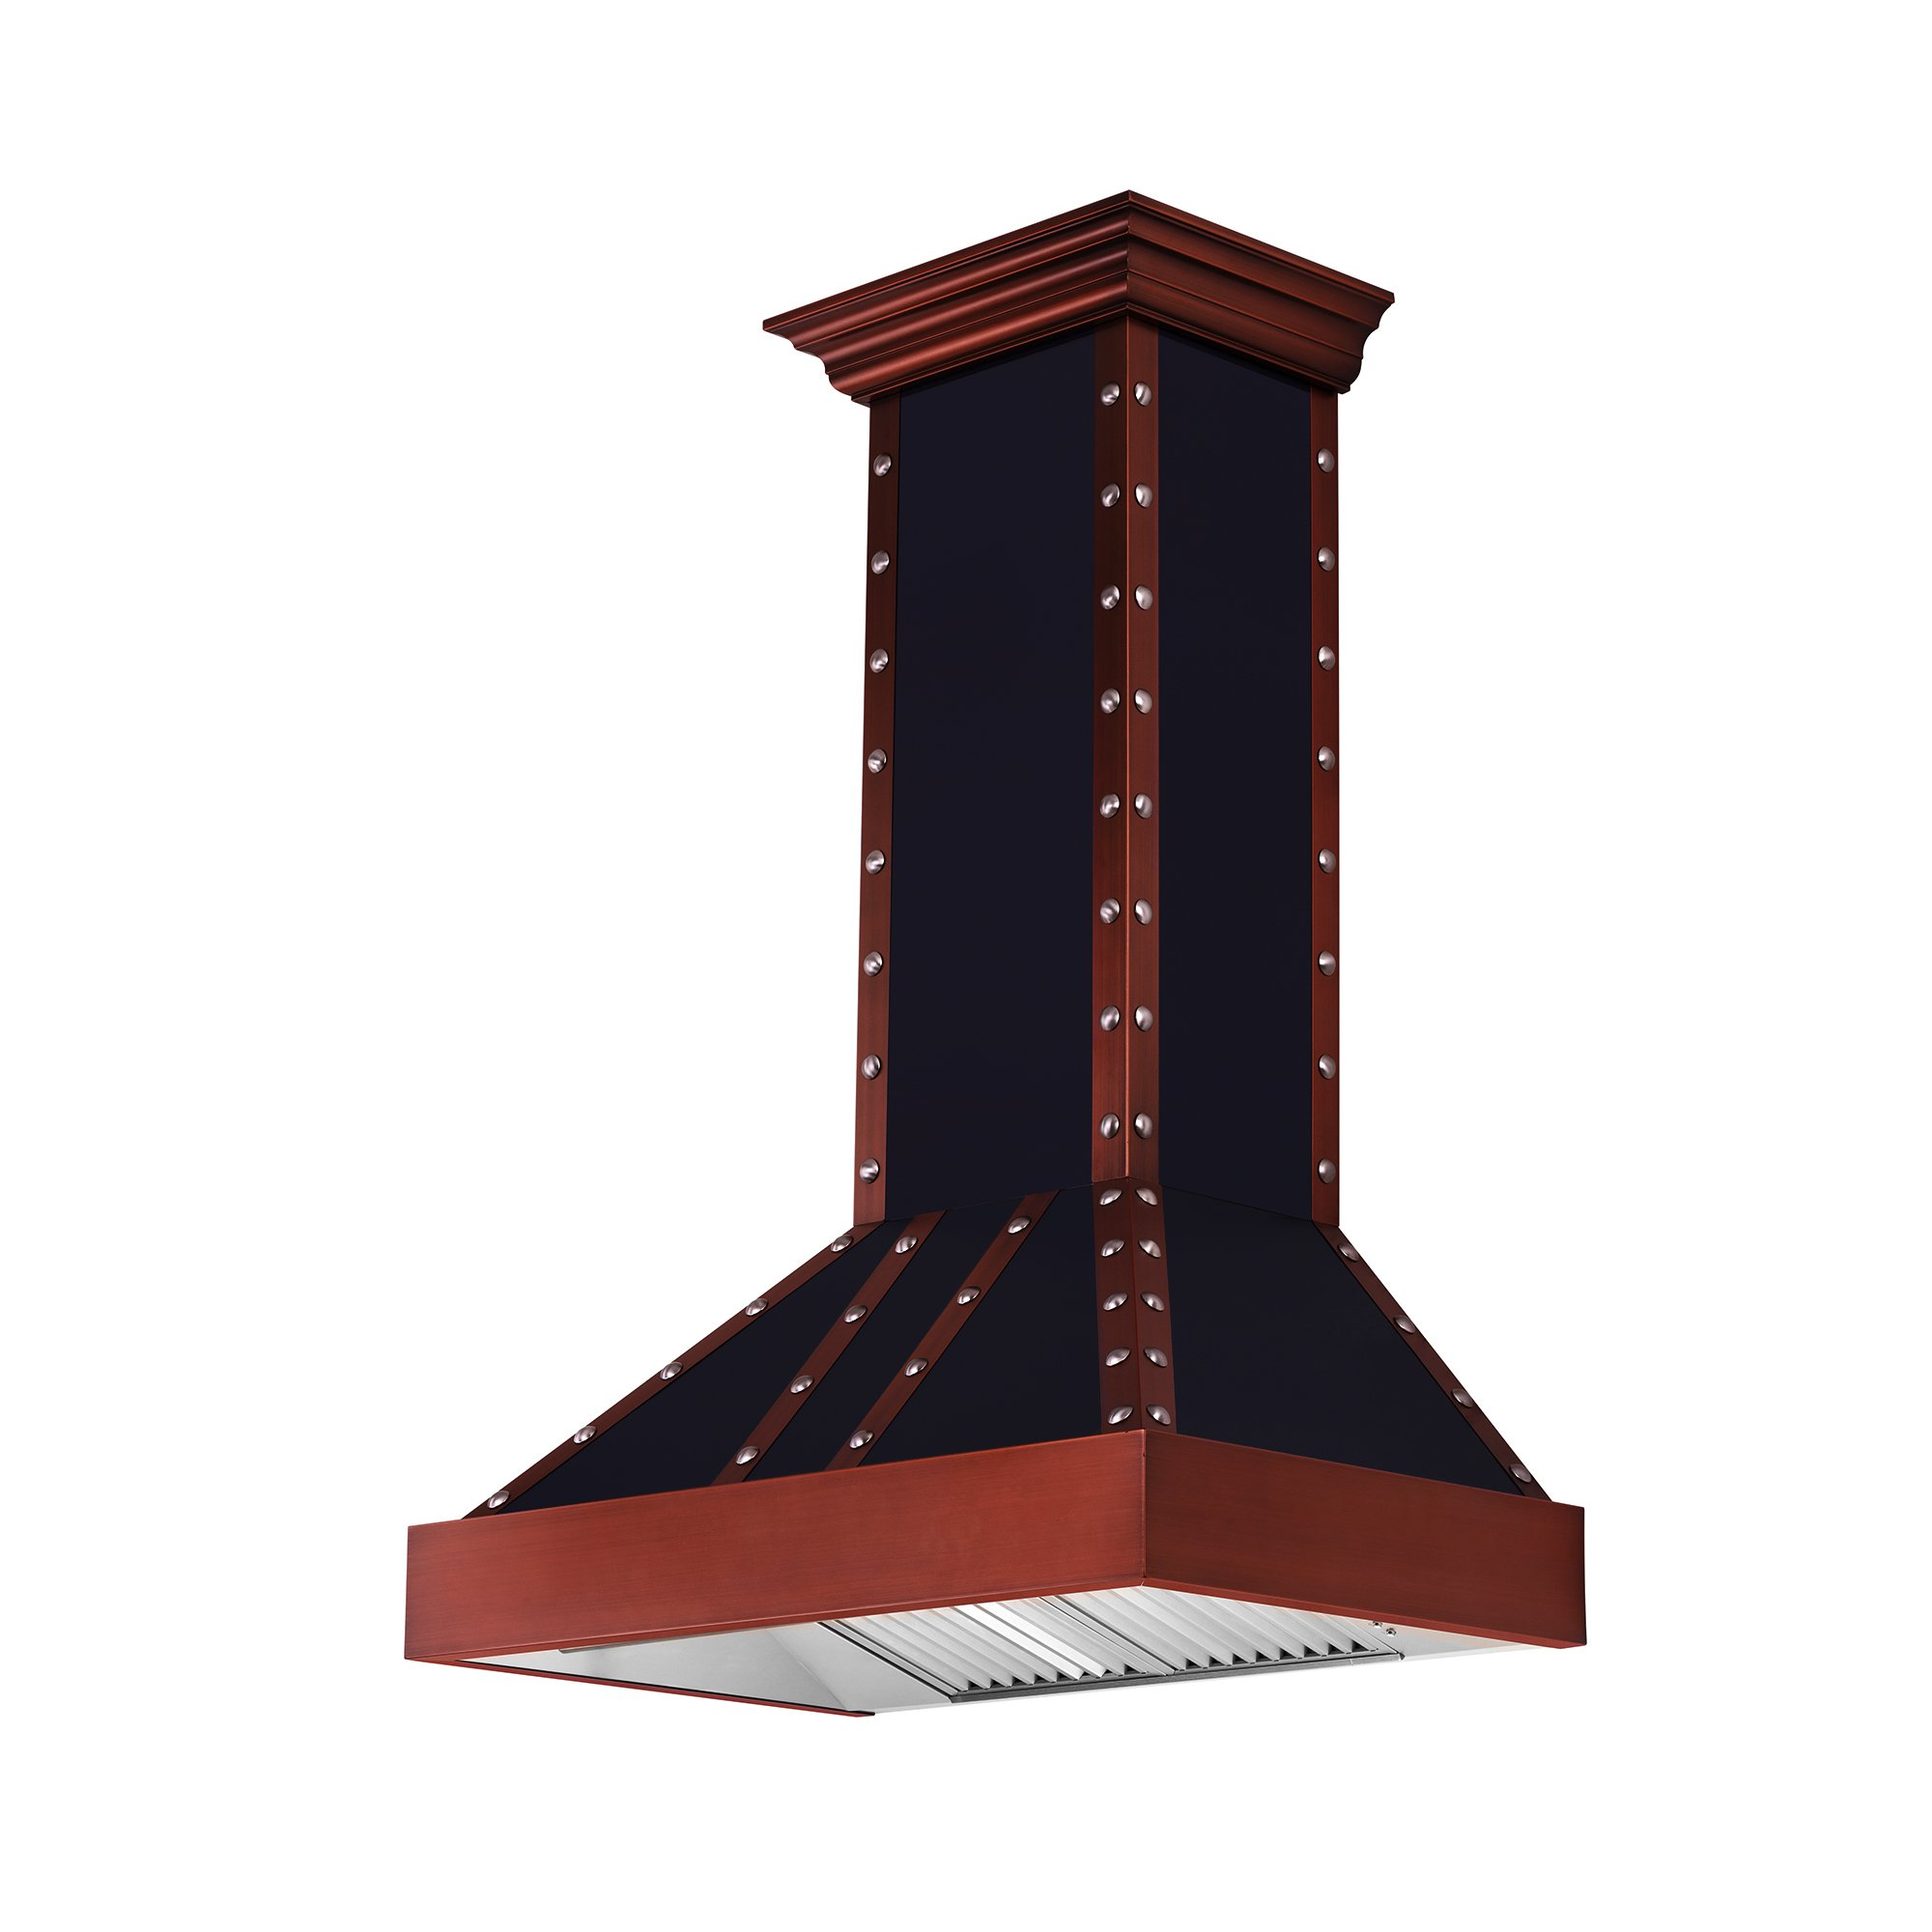 Z Line 655-BCCCS-30 30'' 900 CFM Designer Series Wall Mount Range Hood, Oil-Rubbed Bronze by Z-Line